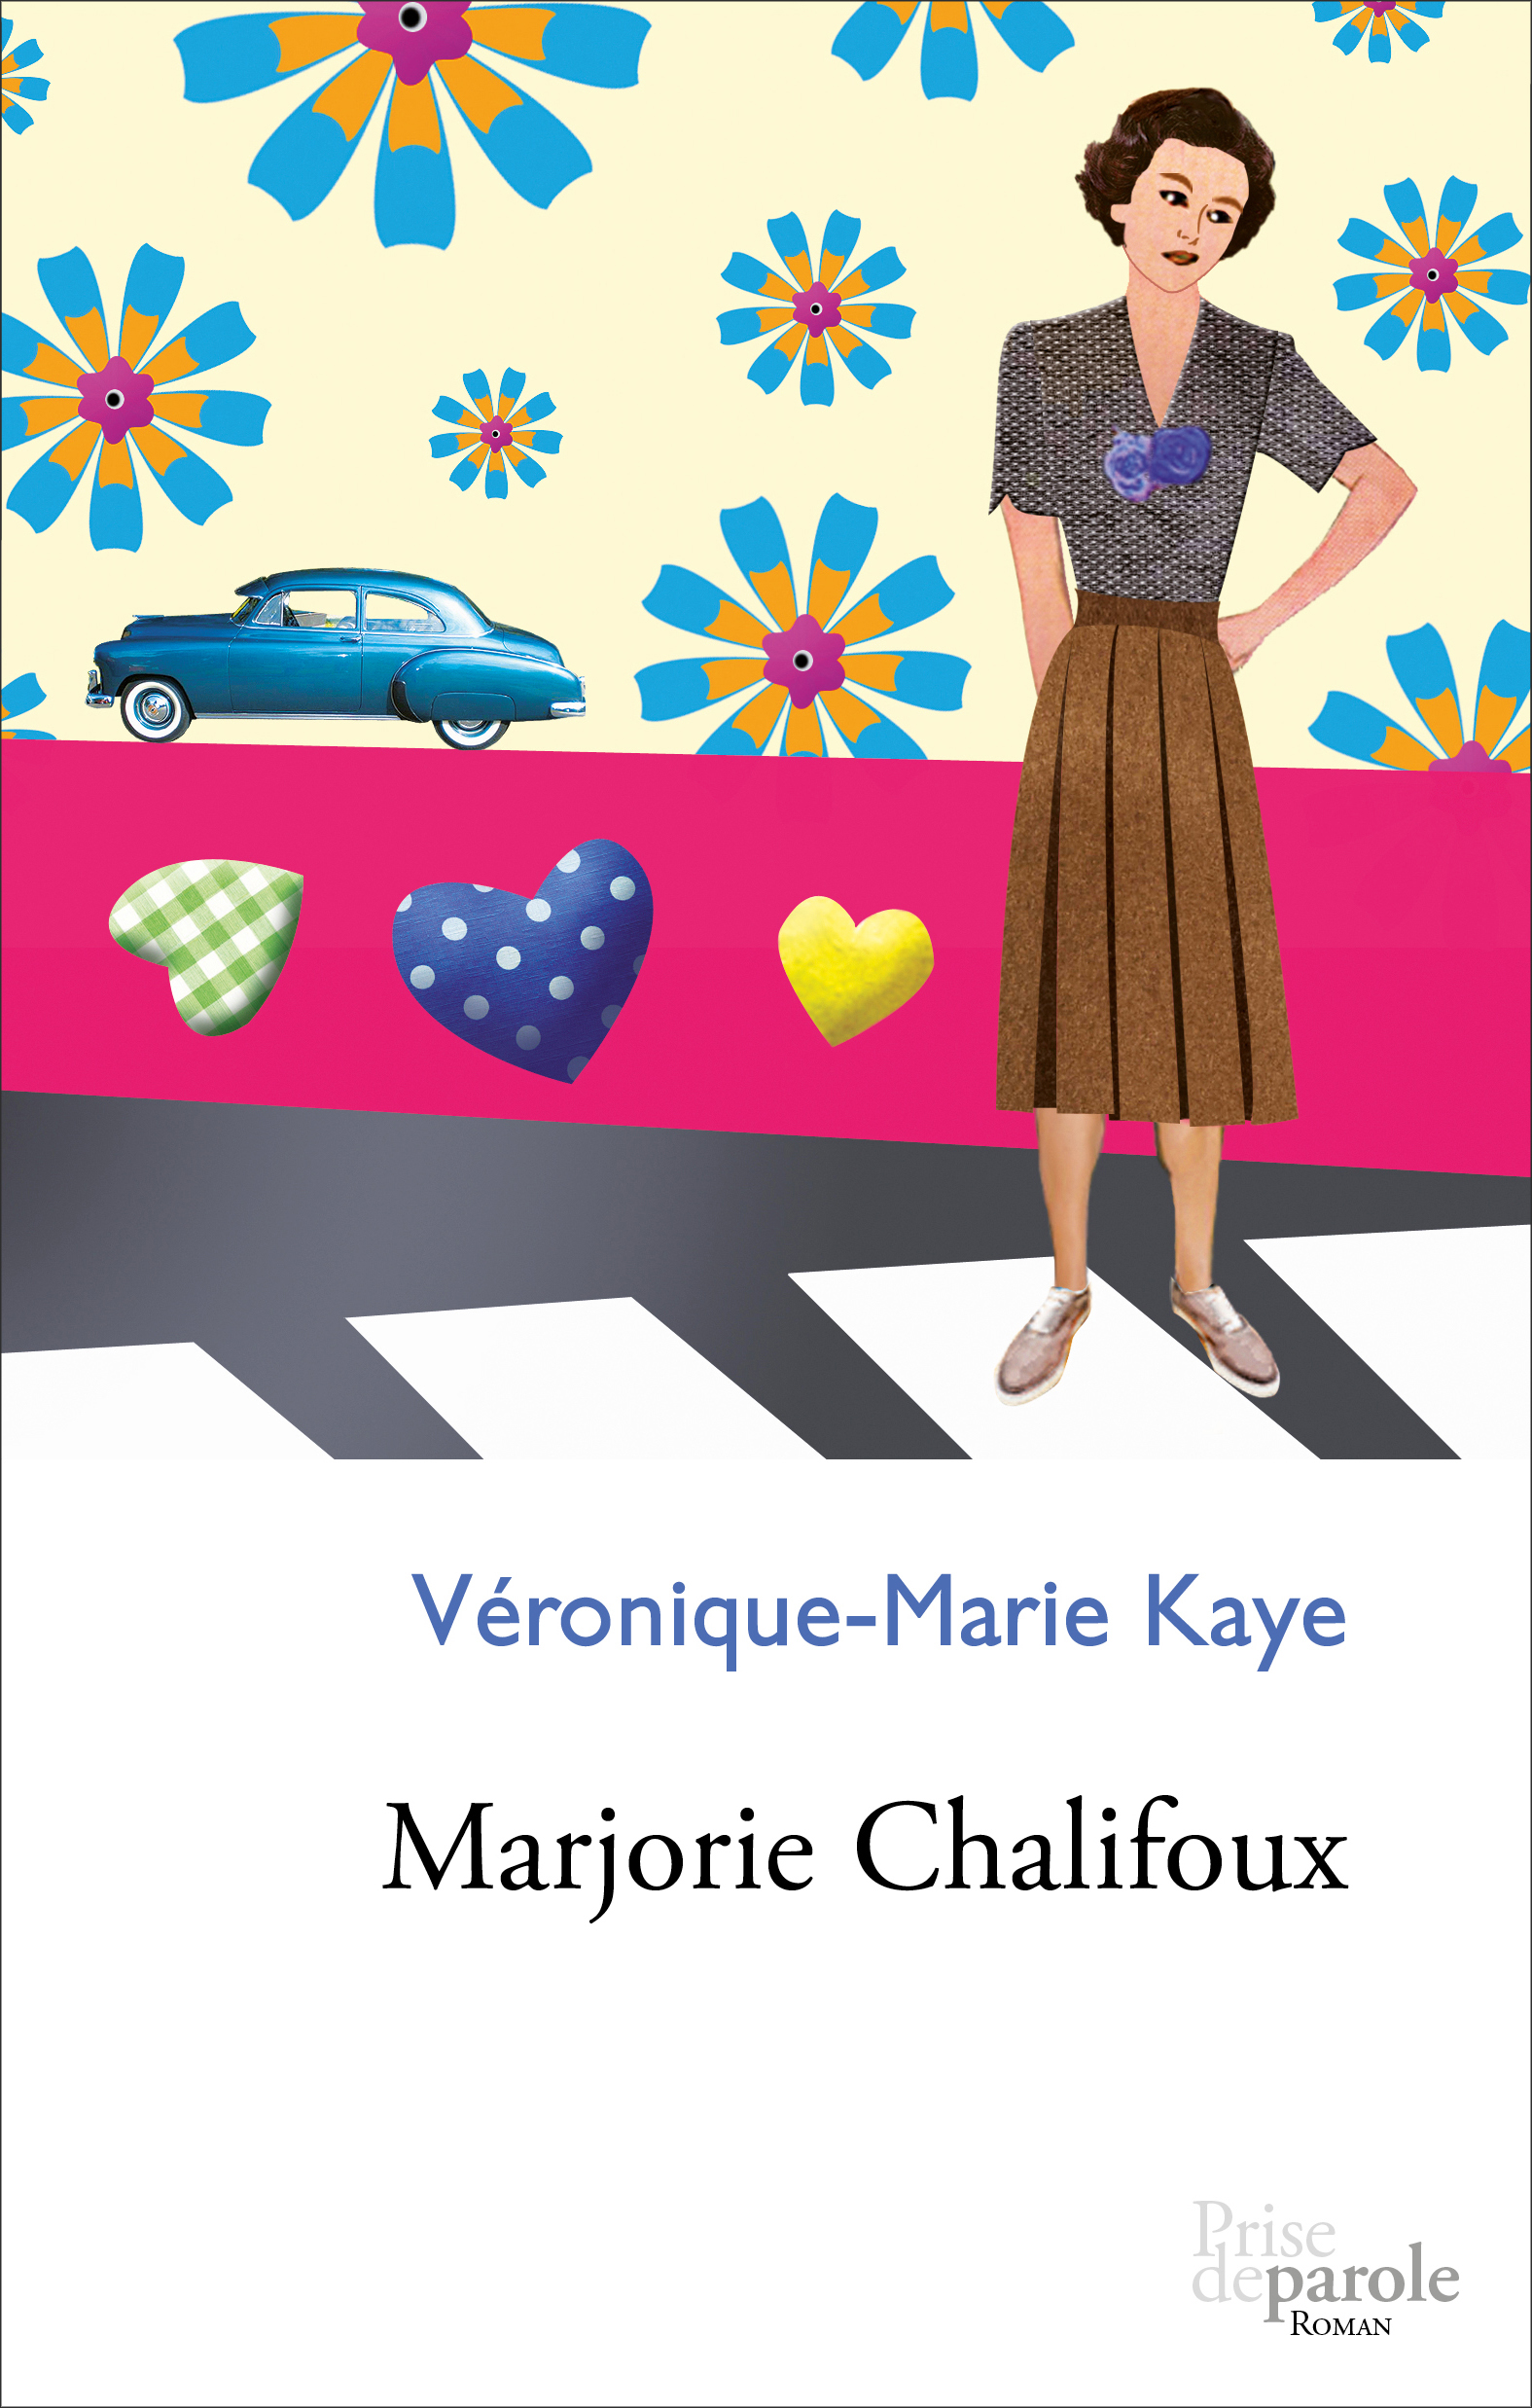 Couverture : Marjorie Chalifoux Véronique-marie Kaye